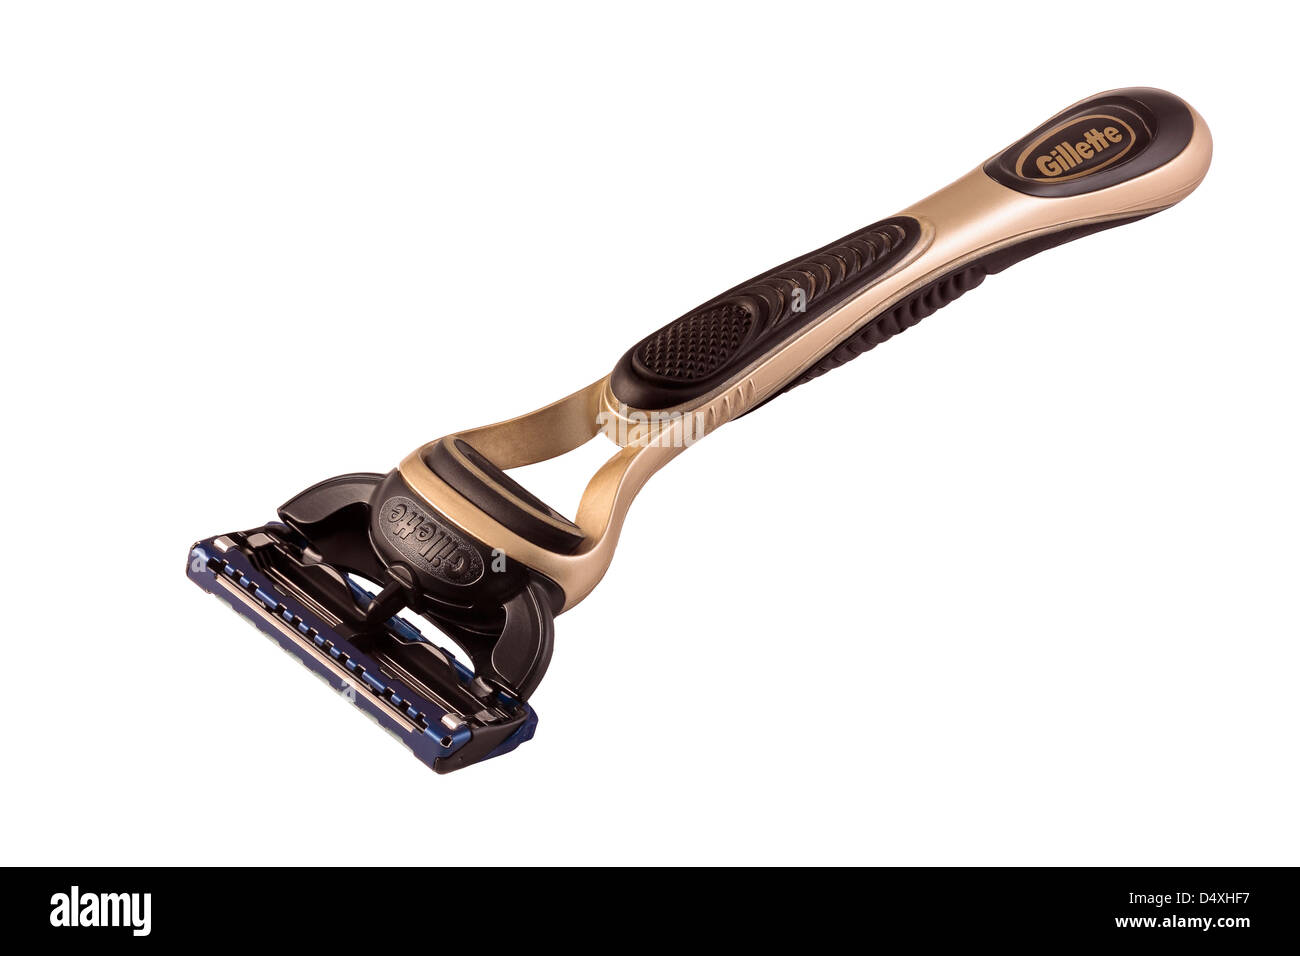 Gillette Fusion Proglide Olympic Gold Edition Razor isolated on white background - Stock Image